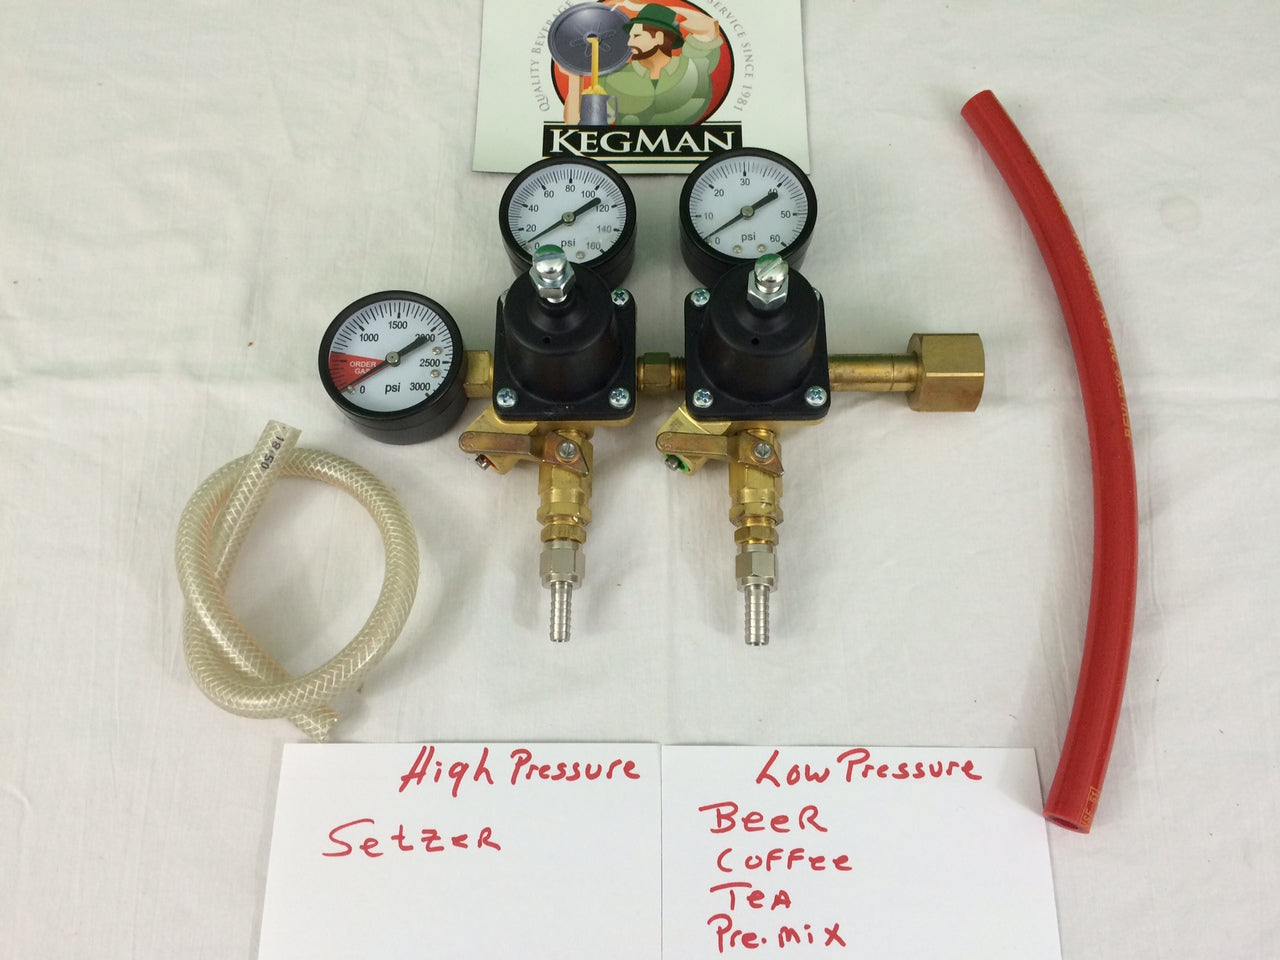 Two Pressure Seltzer and Beer Gas Regulator